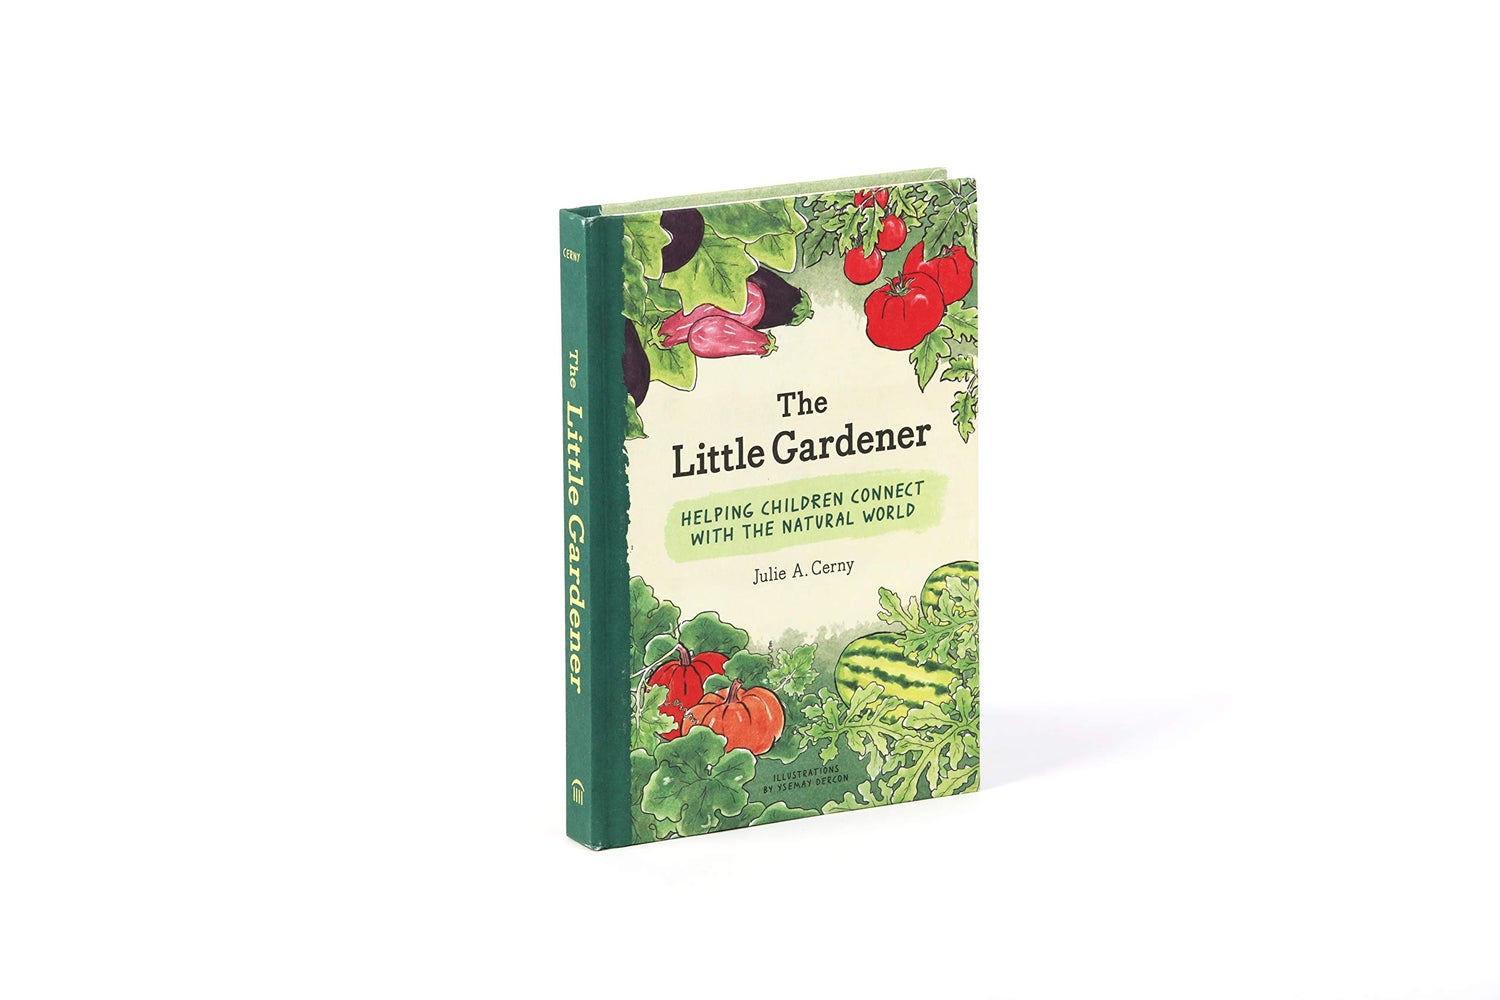 Image of The Little Gardener: Helping Children Connect with the Natural World